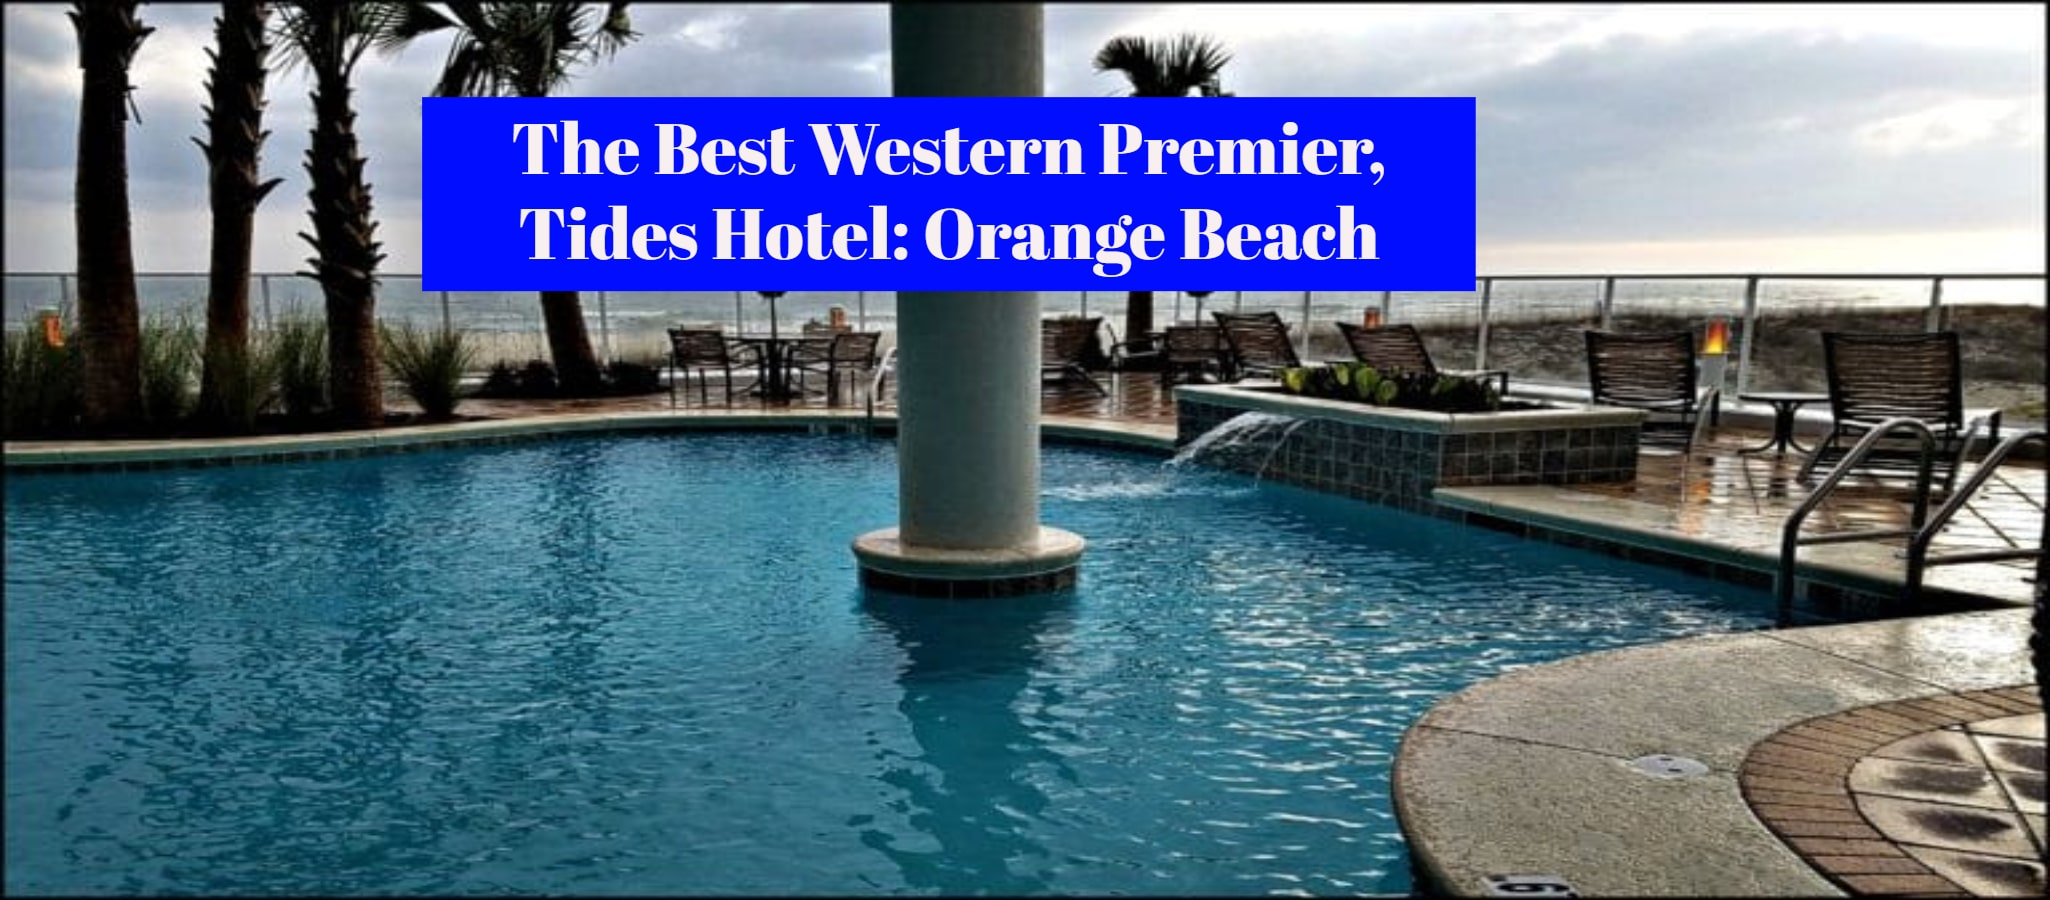 Best Western Premier Orange Beach